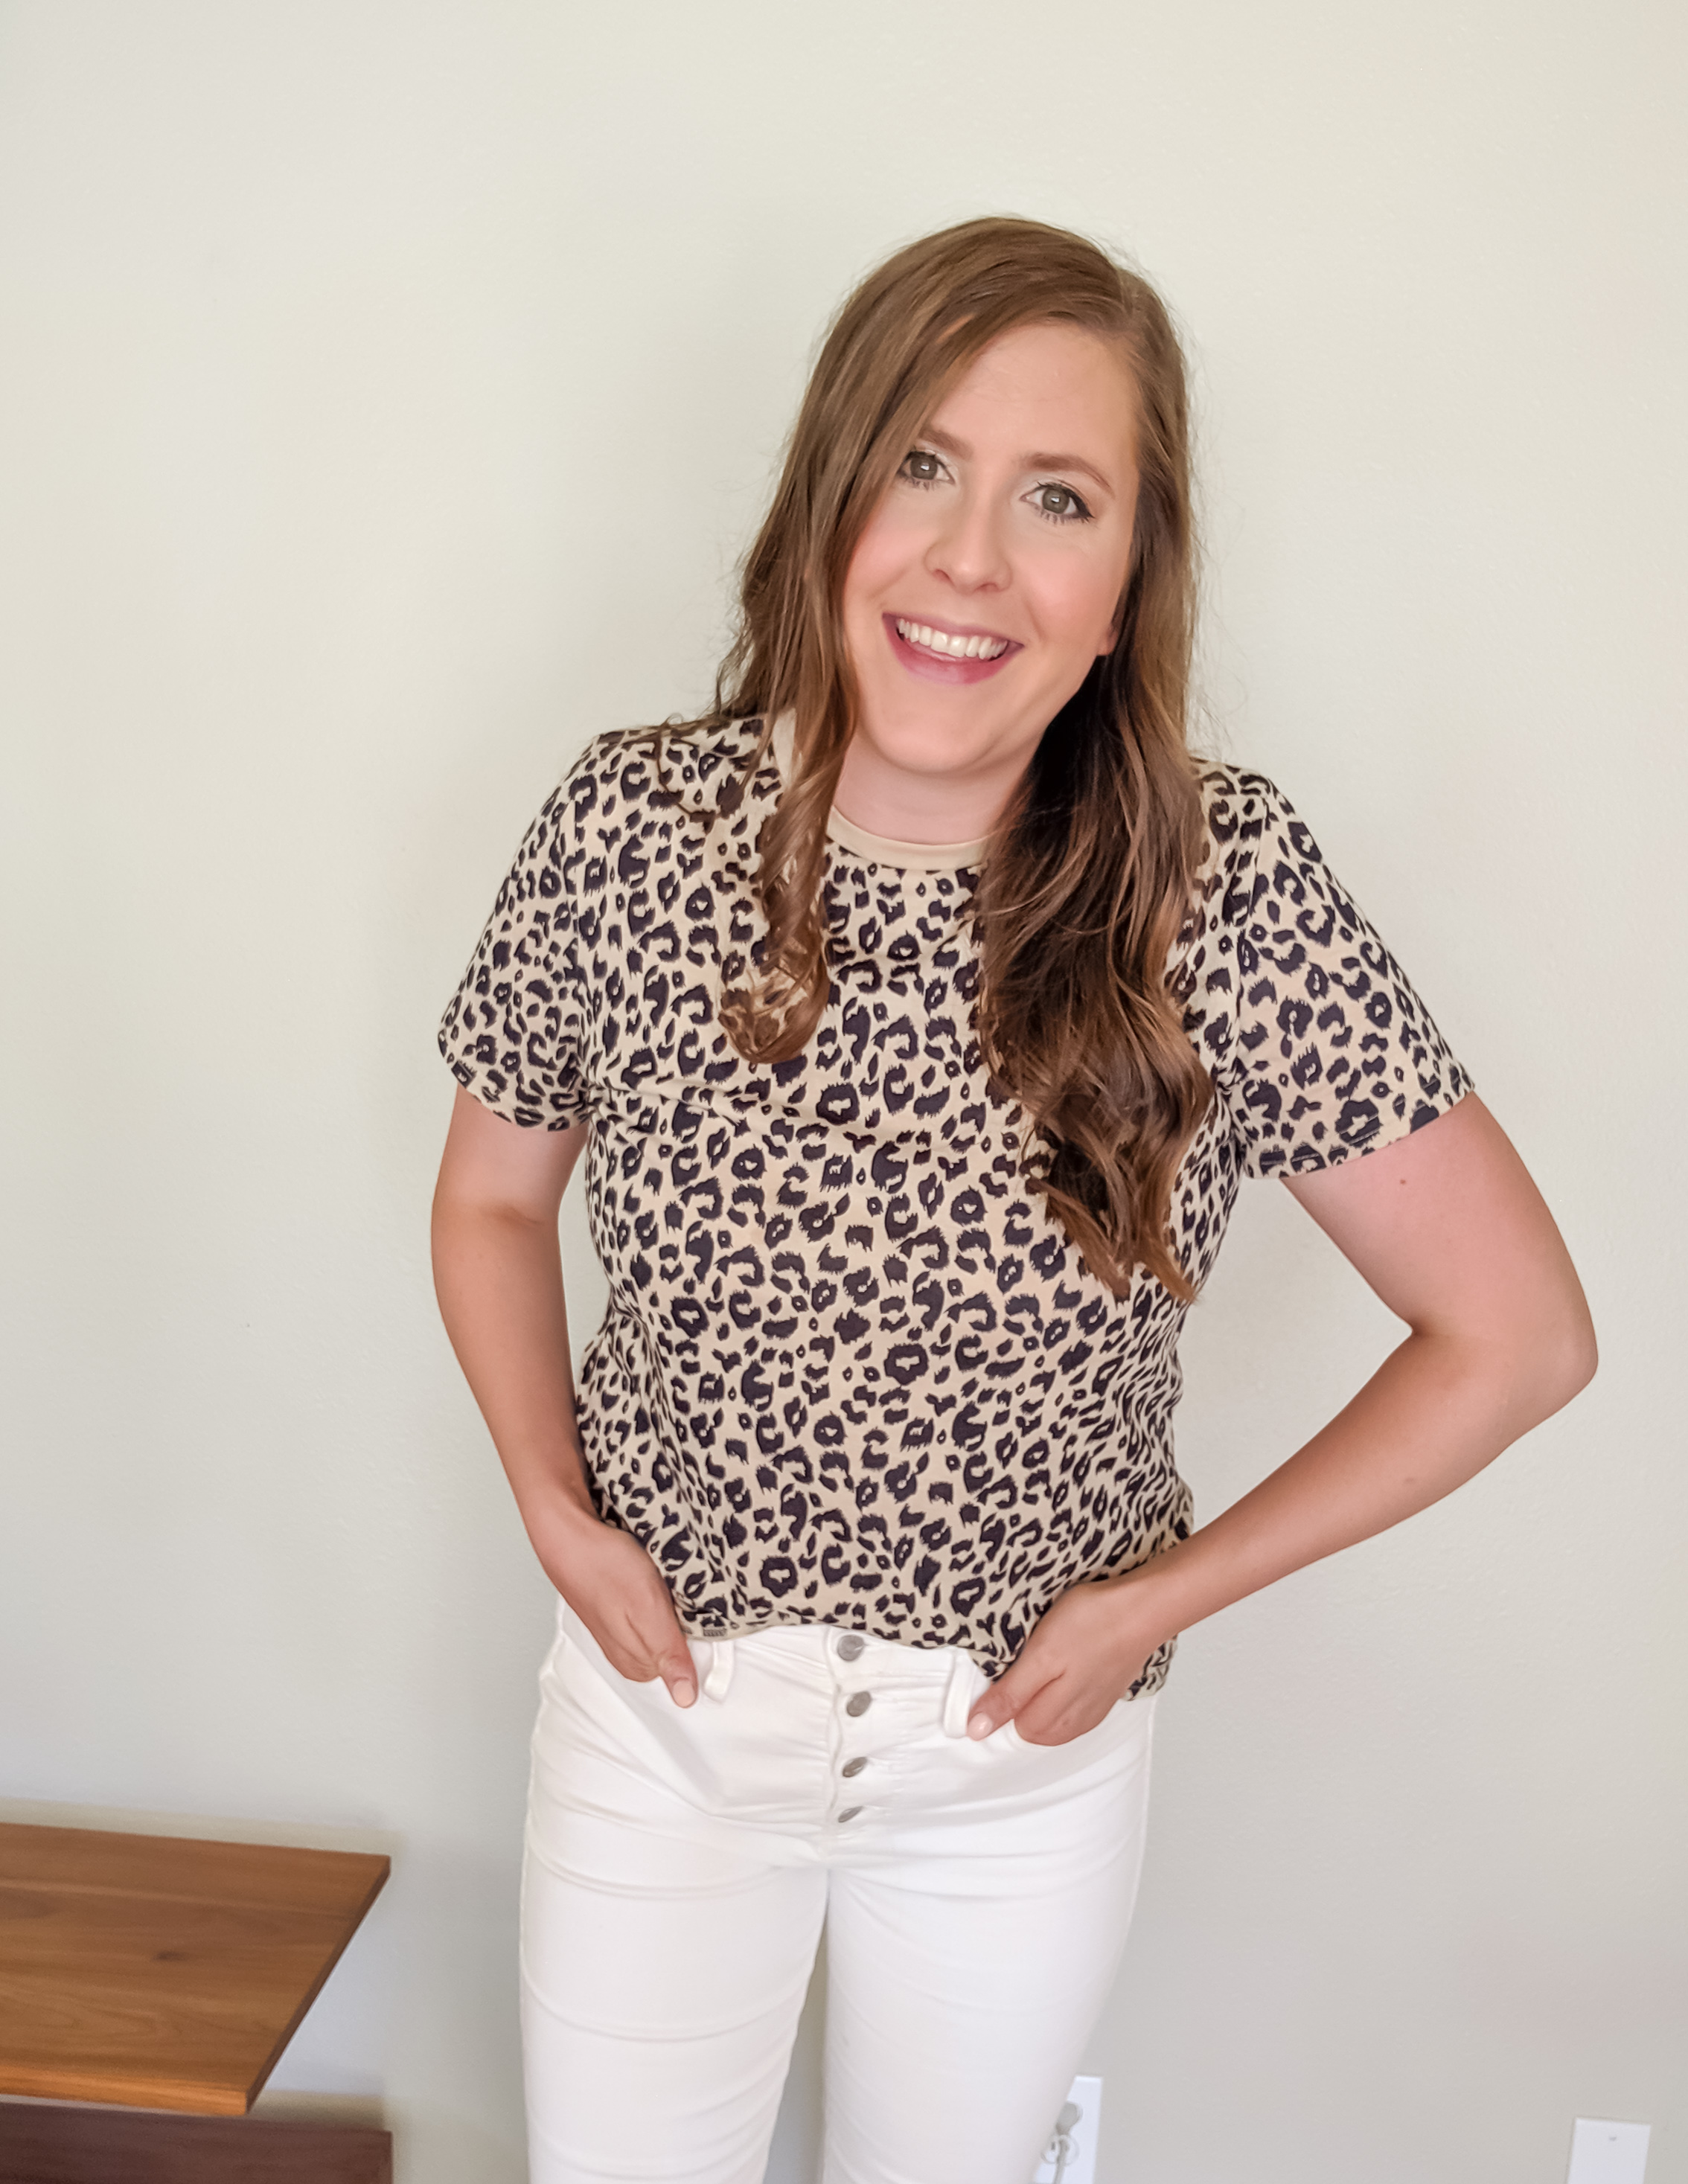 Leopard tee outfit amazon fashion finds madewell button fly best highwaisted jeans